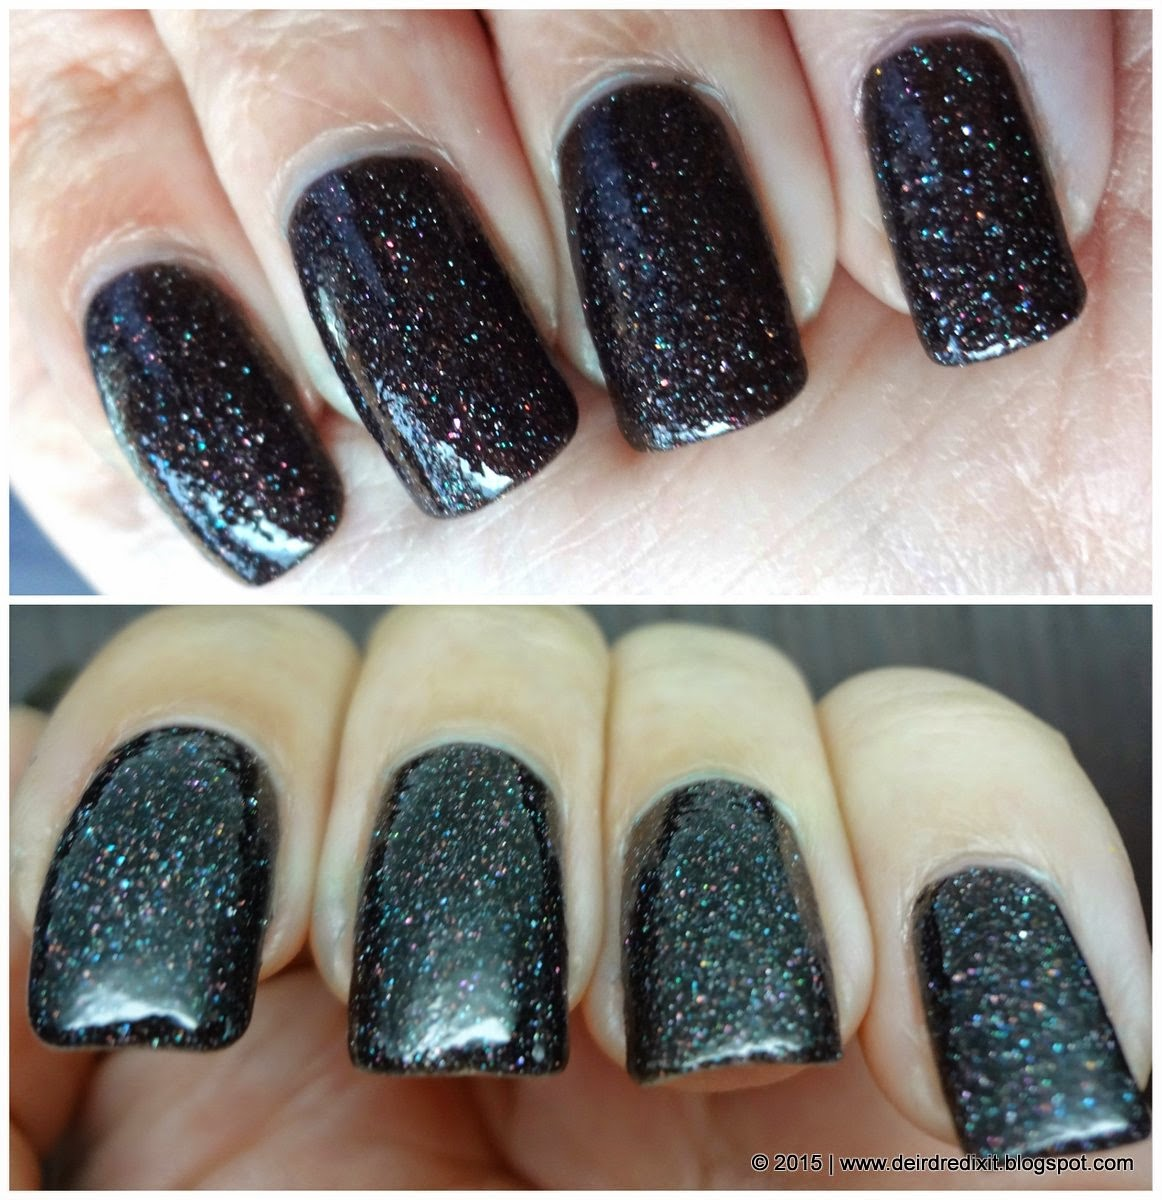 Kiko Real Glare nr. 06 in Exciting Dark Brown with Top Coat